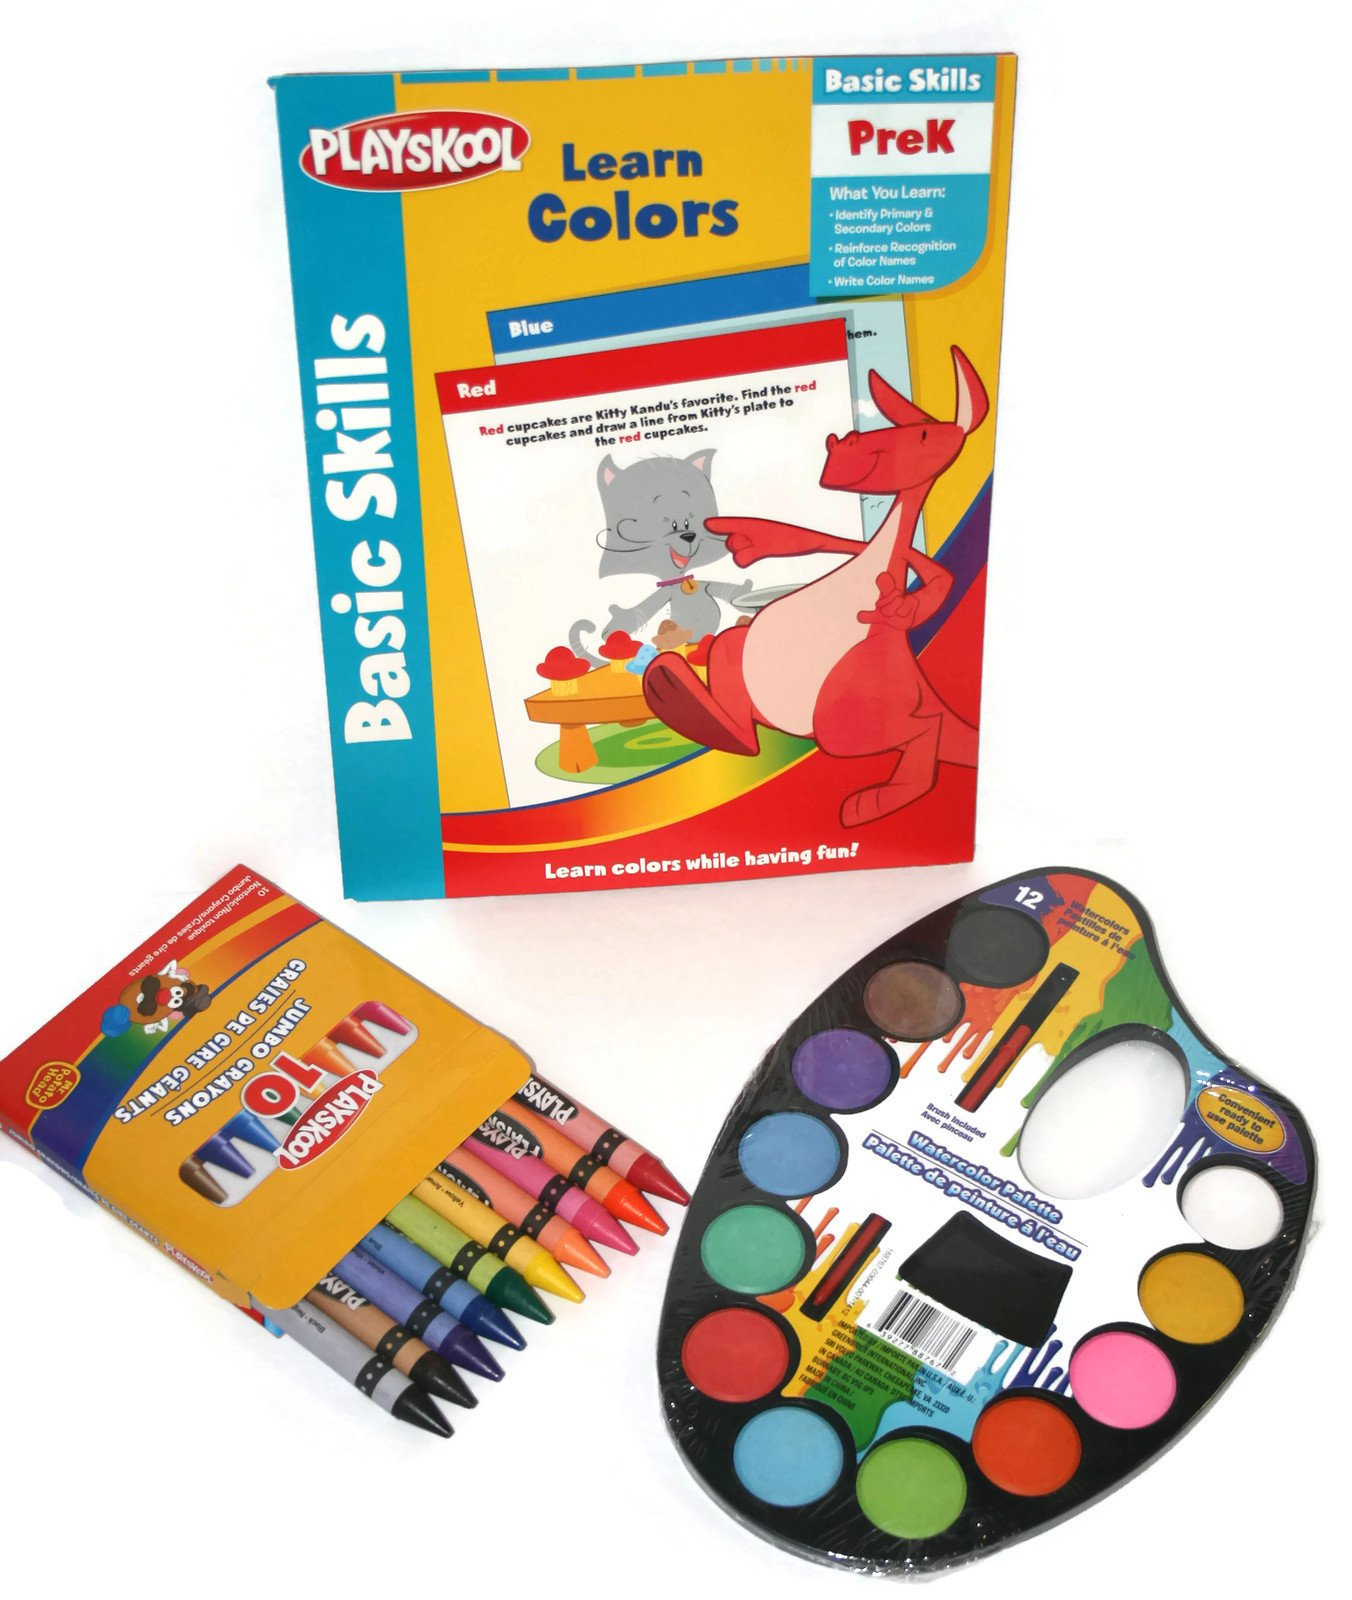 ''Color Me Ready for School'' Pre-k Basic Skills Learning Colors Prep Kit Bundle - Three Items: One Watercolor Palette Set of 12 Paints, One Playskool 10 Pc Set of Jumbo Crayons, One Playskool Basic Skills Pre-k Learning Colors Workbook